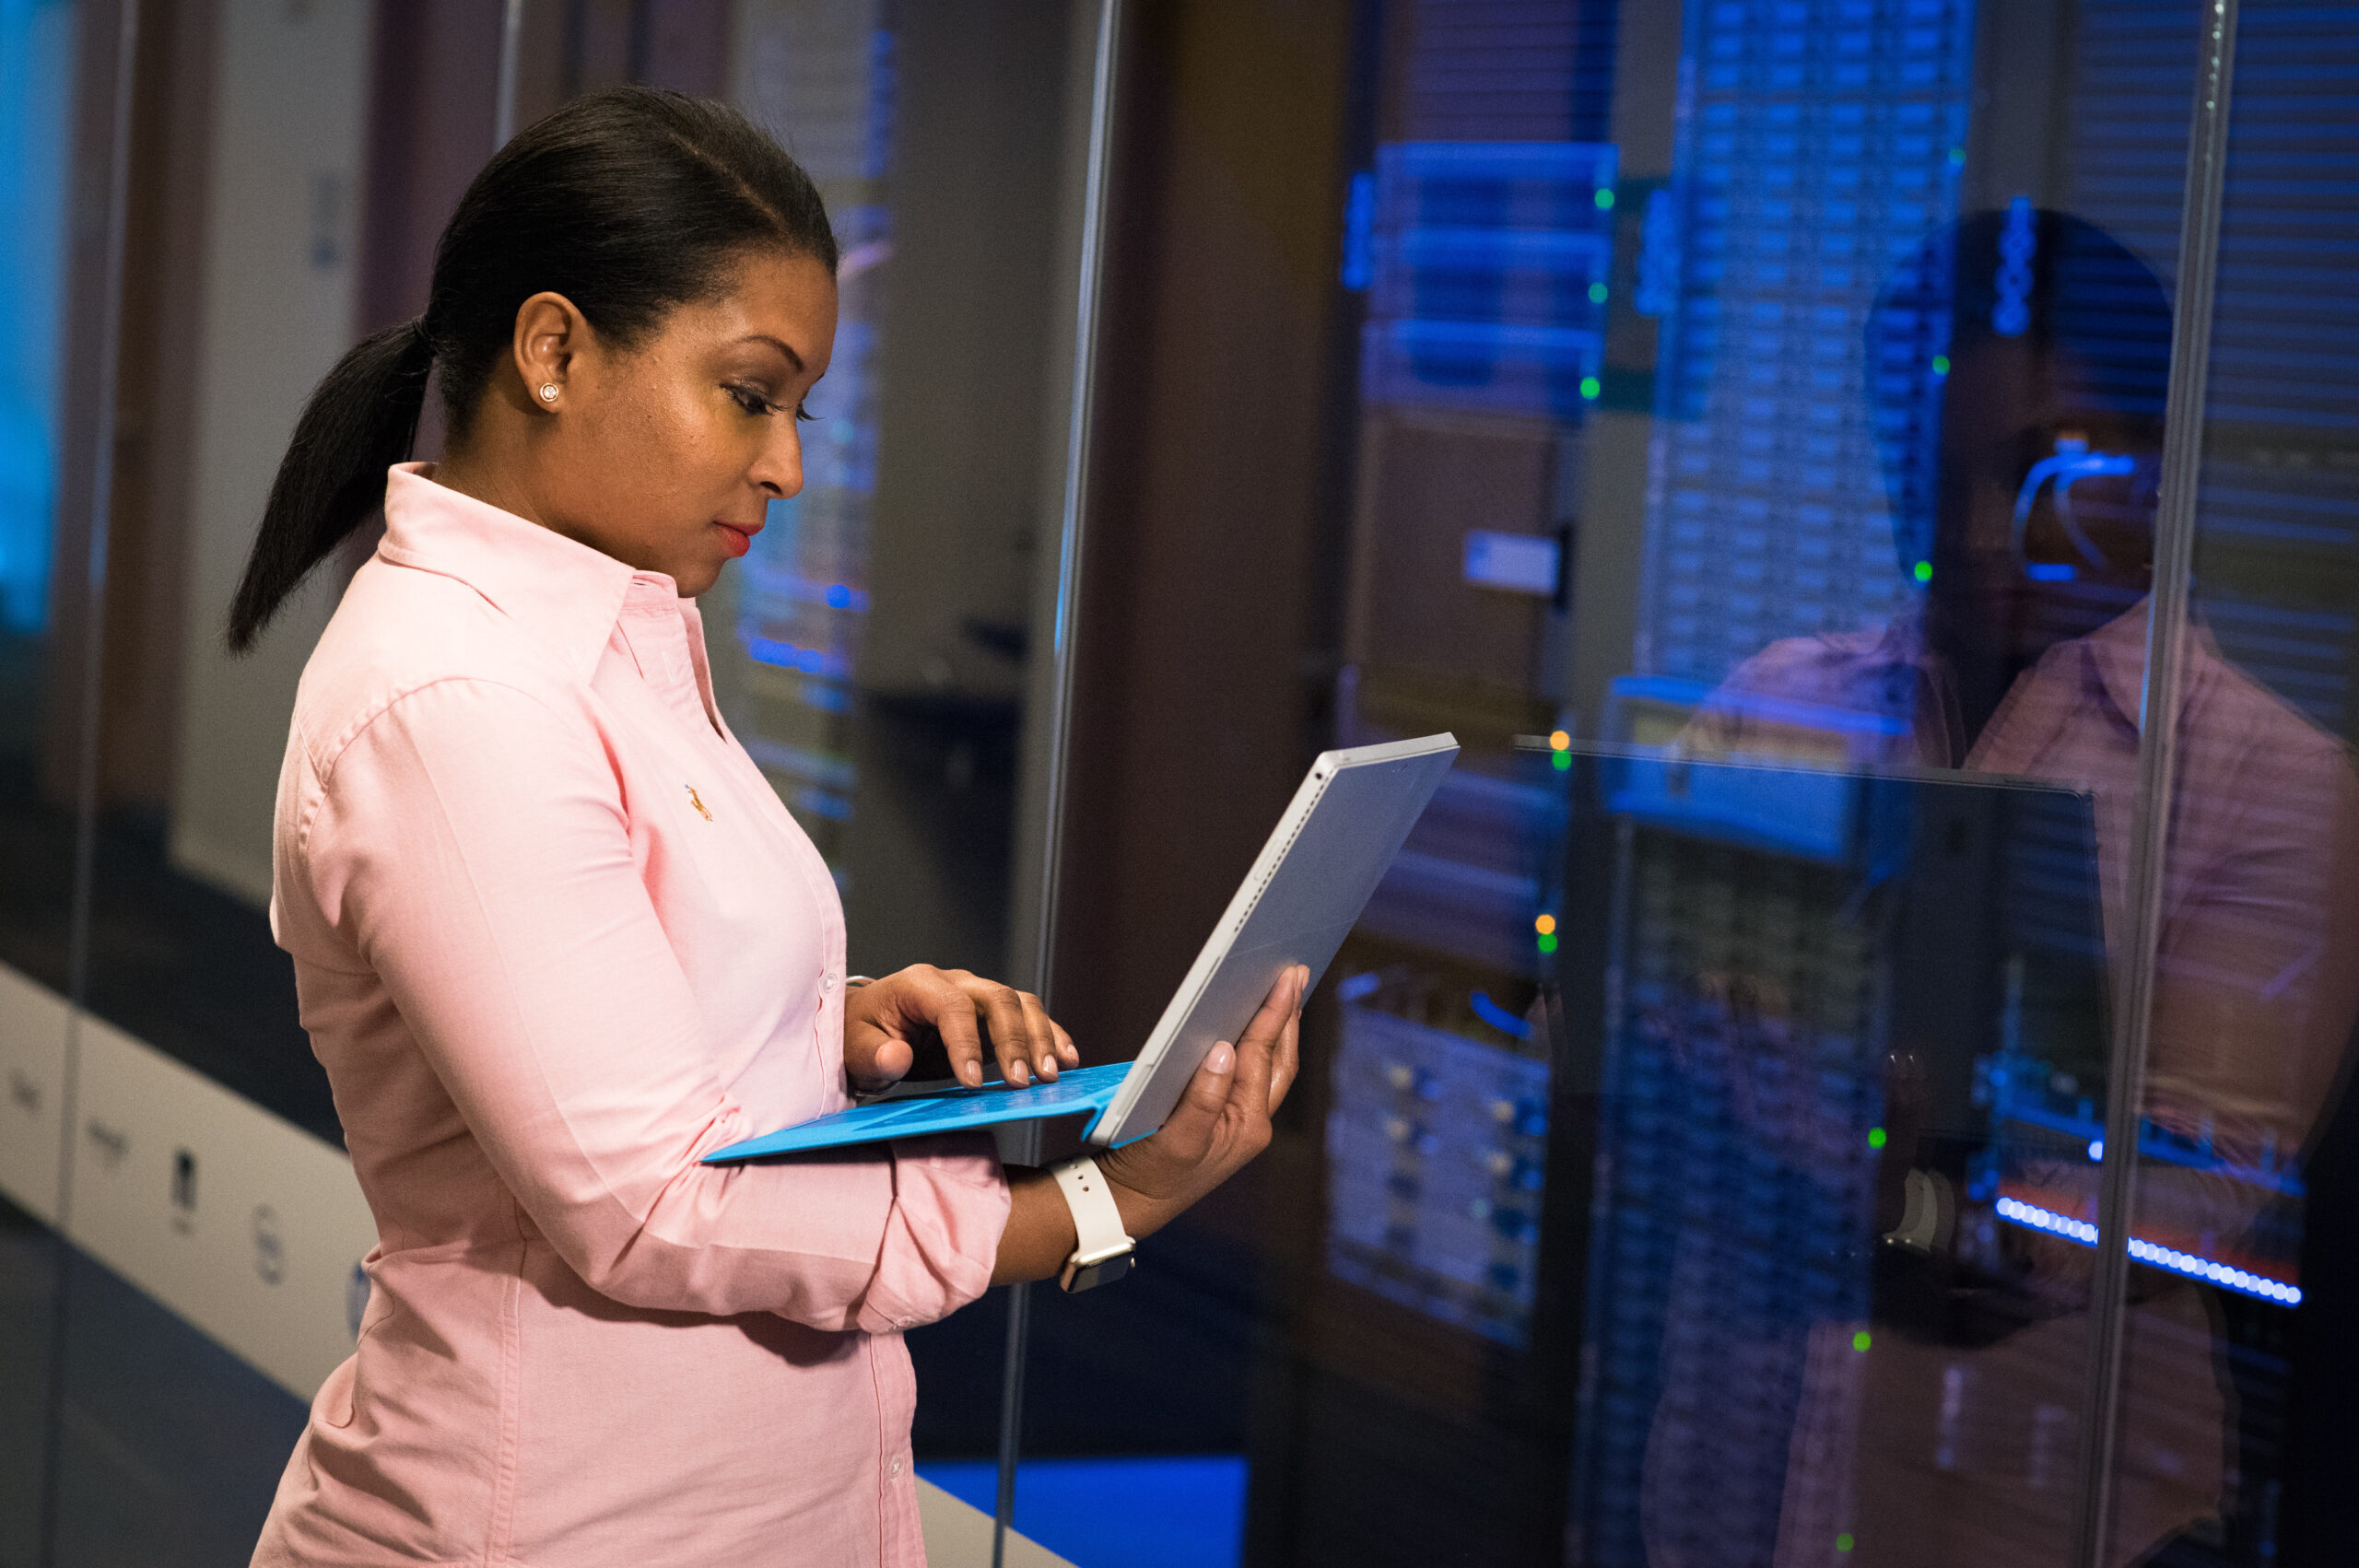 Browse Information Technology Careers